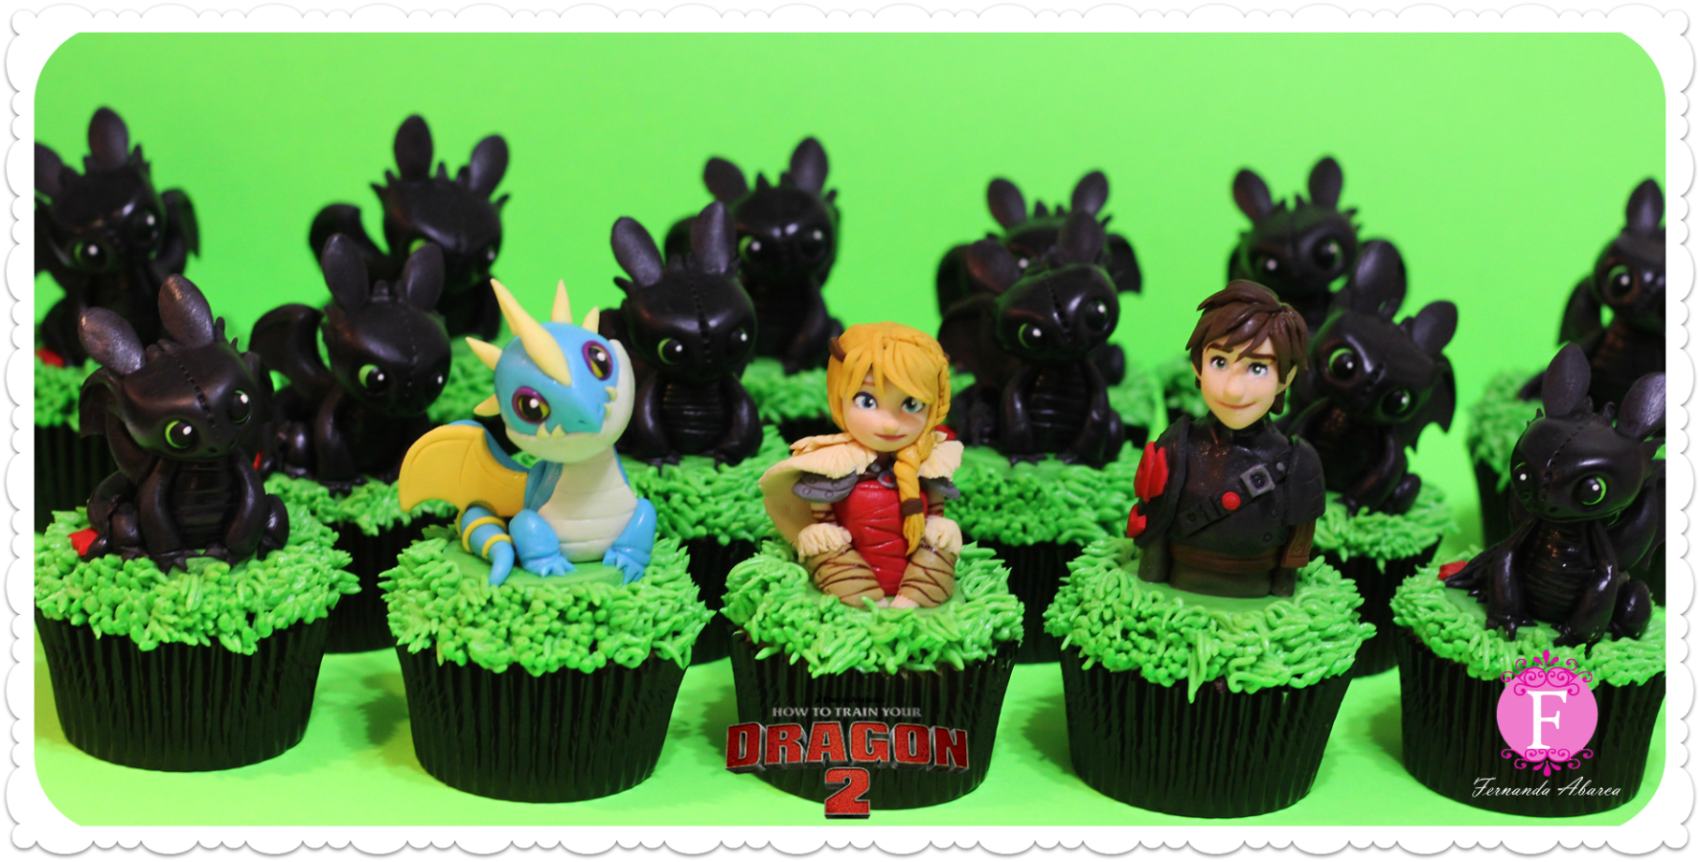 cupcake decorations character 2 Cupcake Decorations of DreamWorks Characters